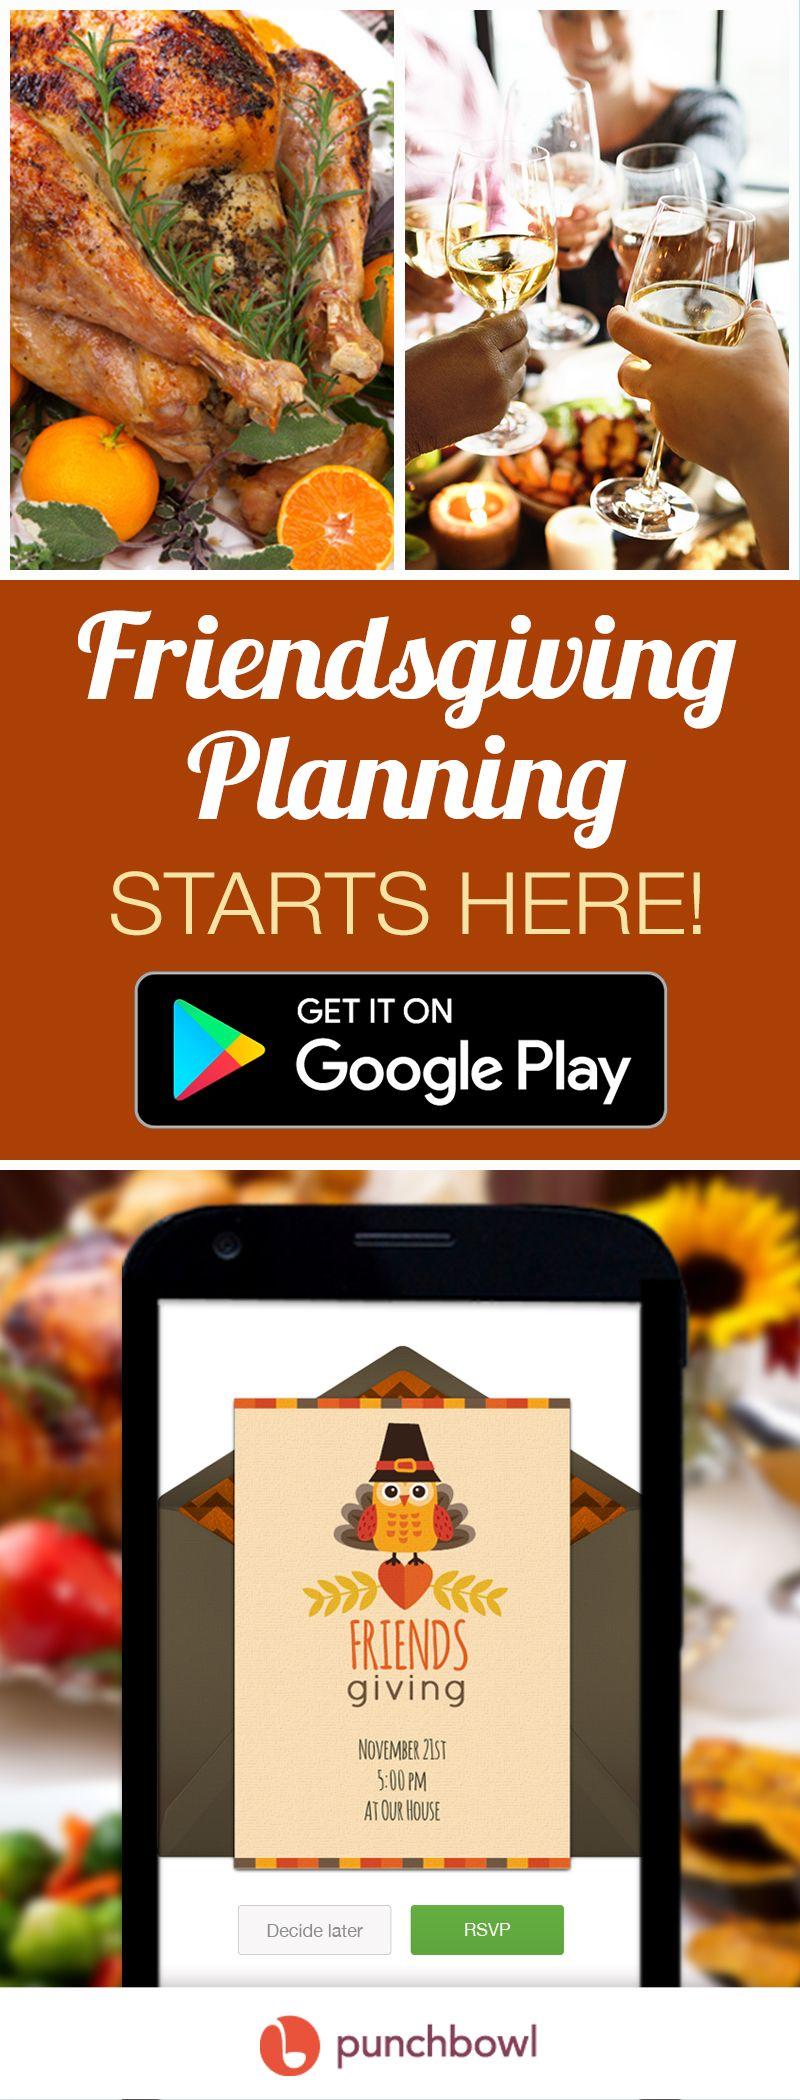 Send free Friendsgiving invitations by text message right